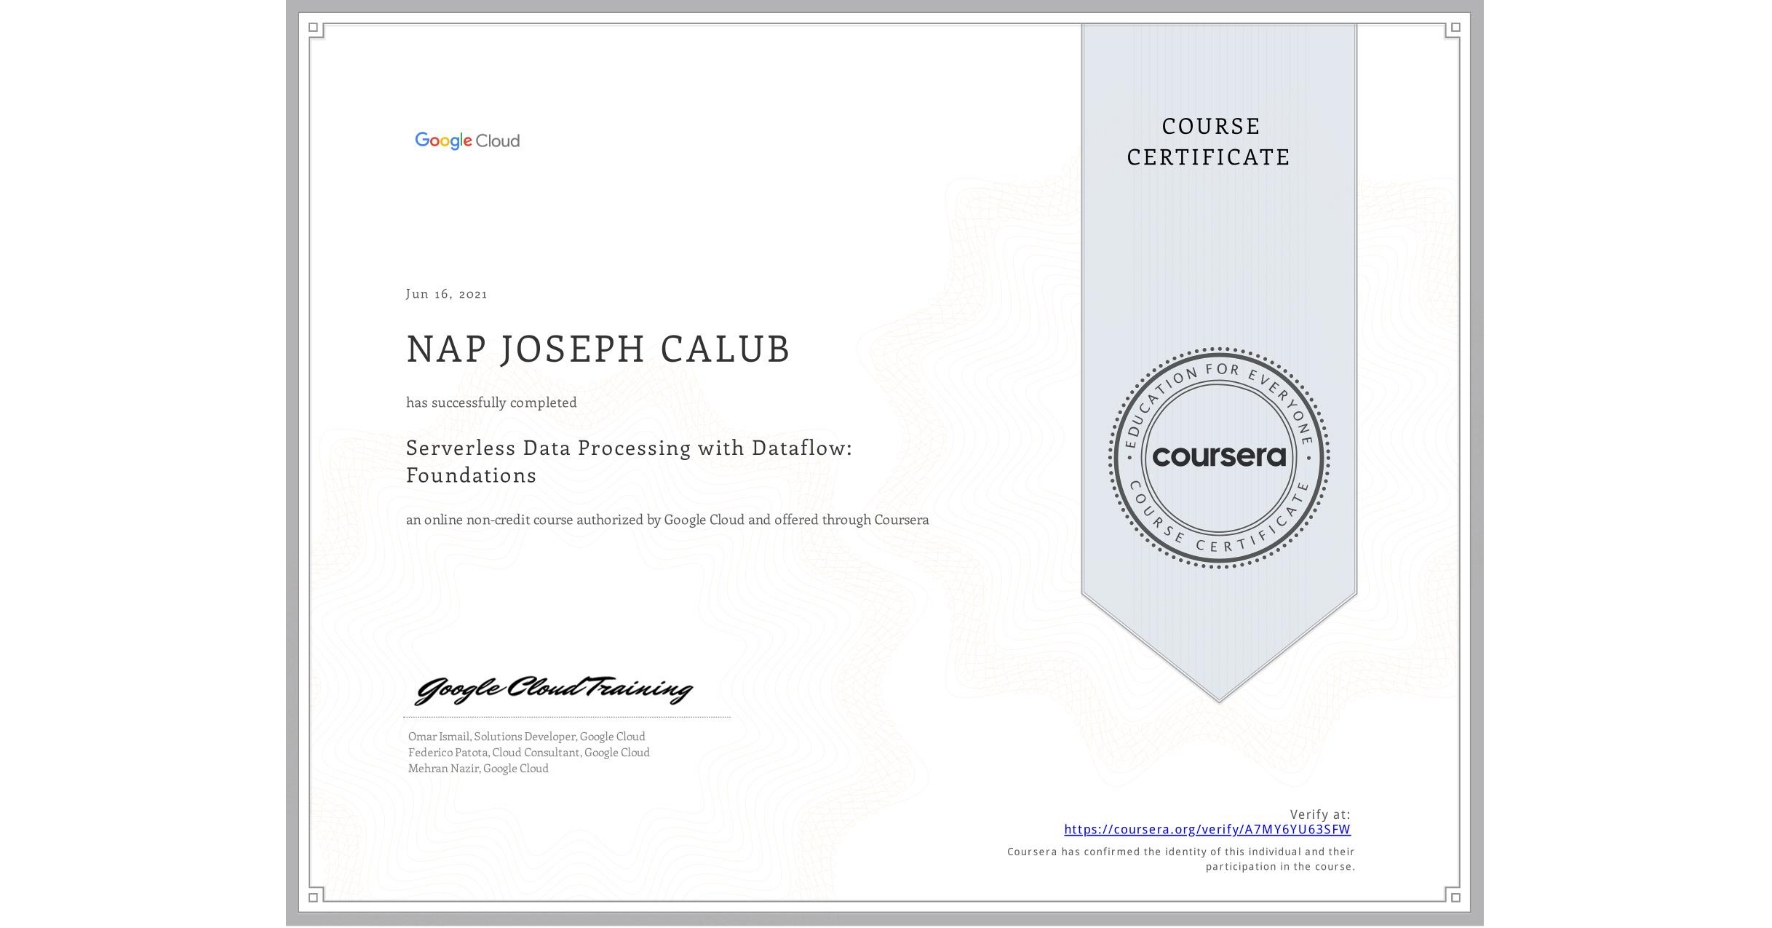 View certificate for NAP JOSEPH  CALUB, Serverless Data Processing with Dataflow: Foundations, an online non-credit course authorized by Google Cloud and offered through Coursera